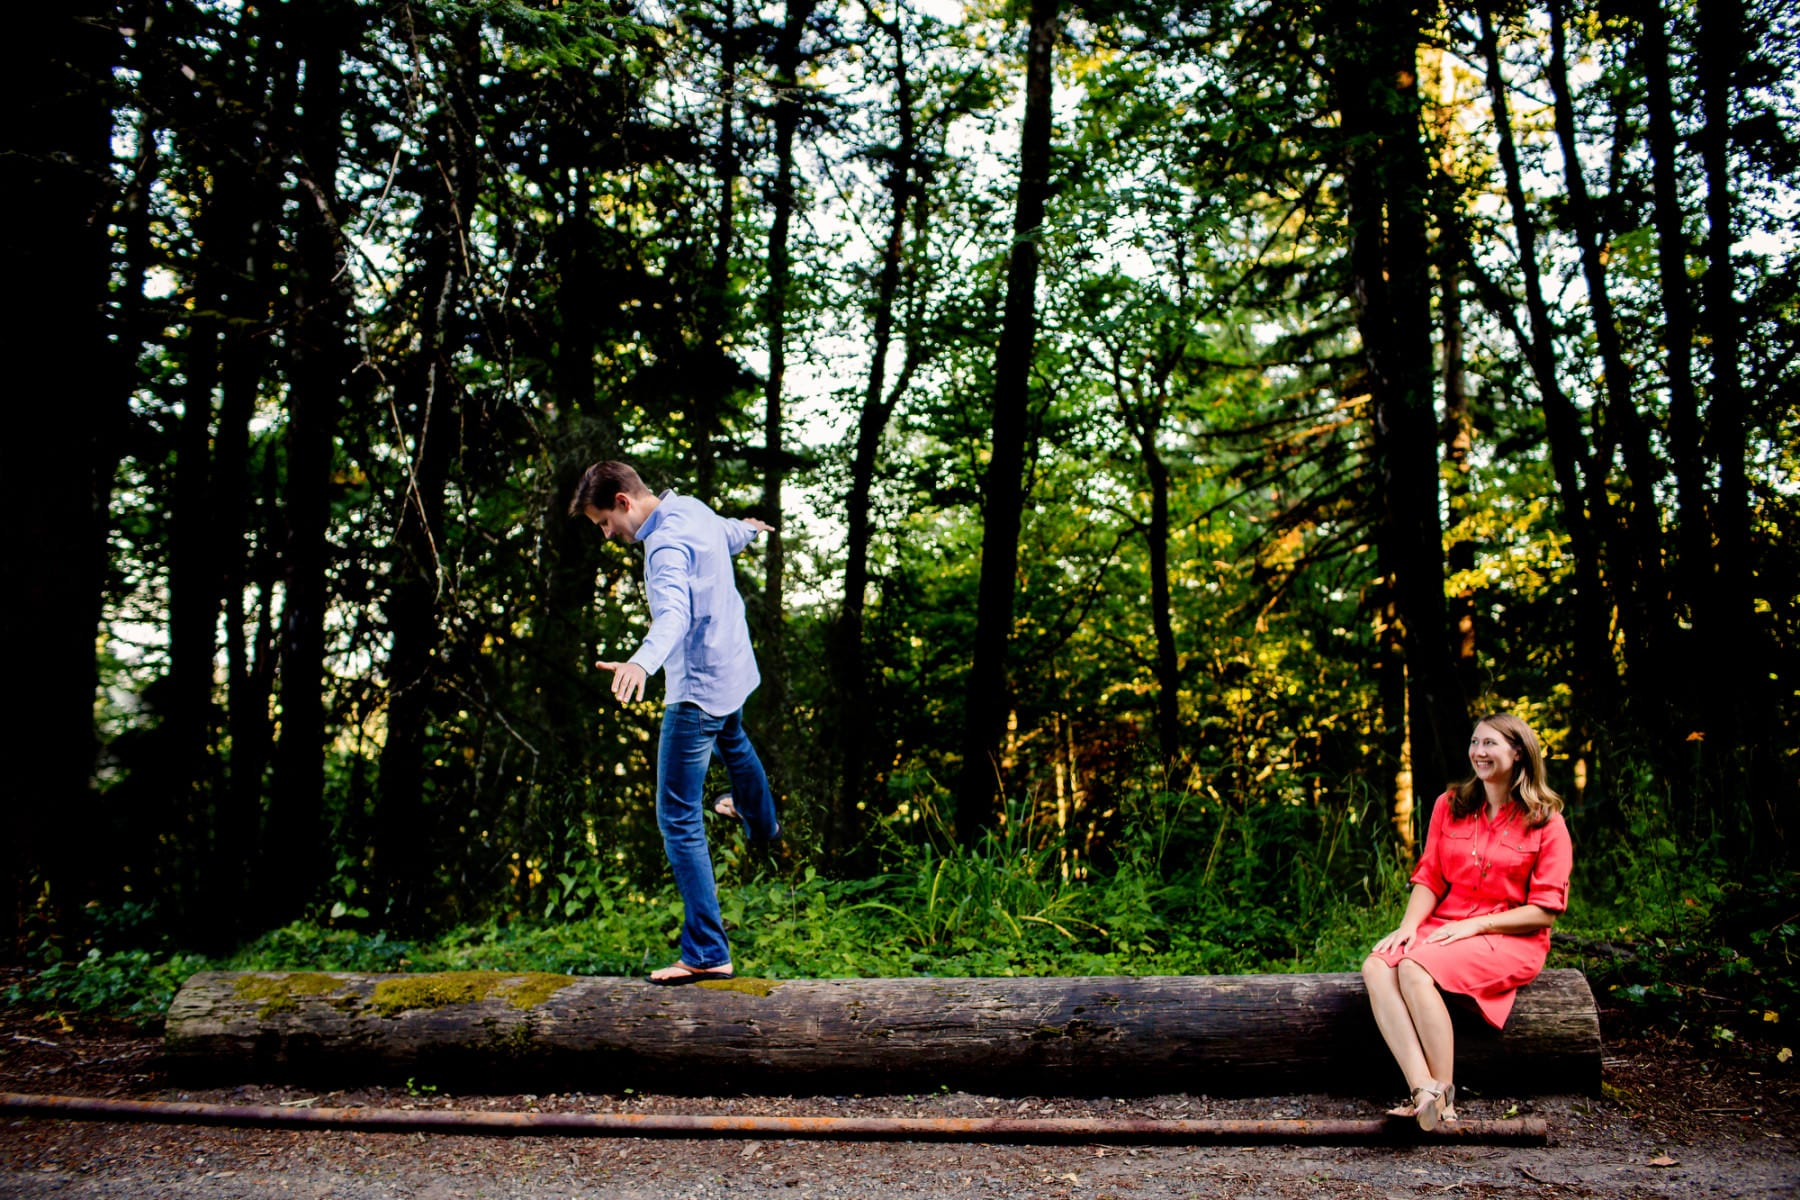 Pittock Mansion Engagement Photo Shoot by Stark Photography (4)